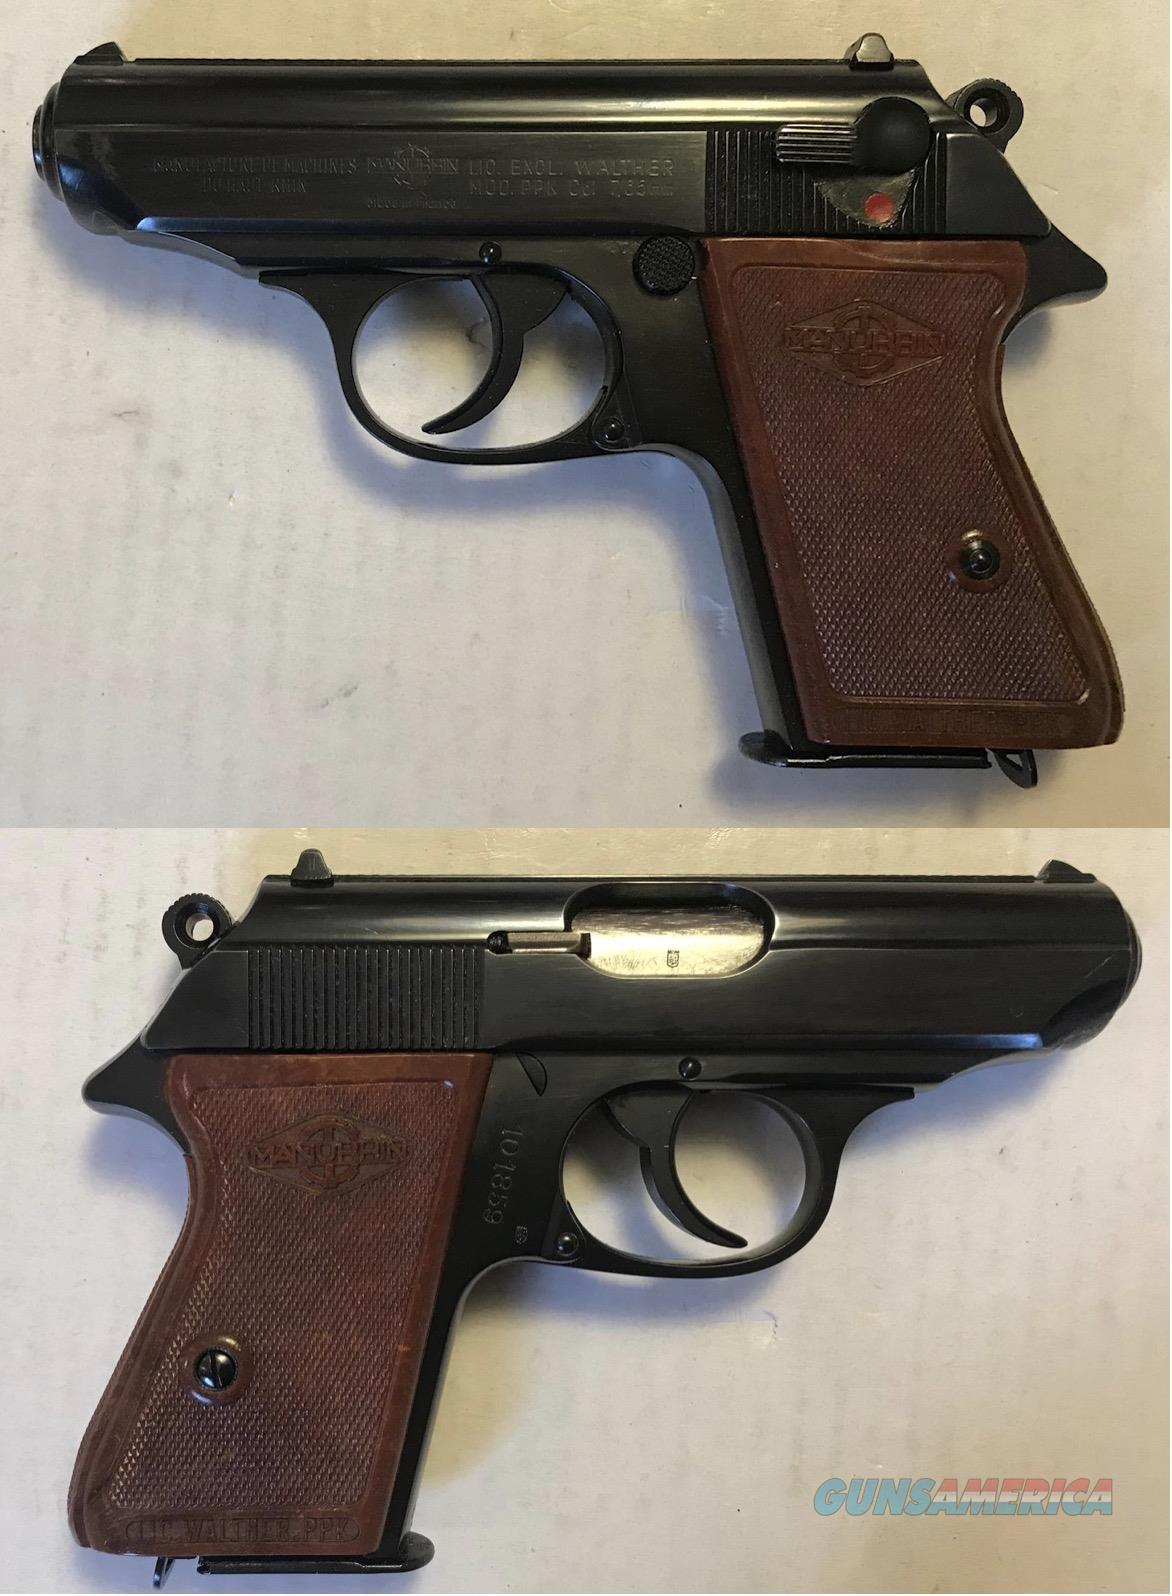 Walther / Manurhin PPK 7.65mm .32ACP C&R  Guns > Pistols > Walther Pistols > Post WWII > PPK Series